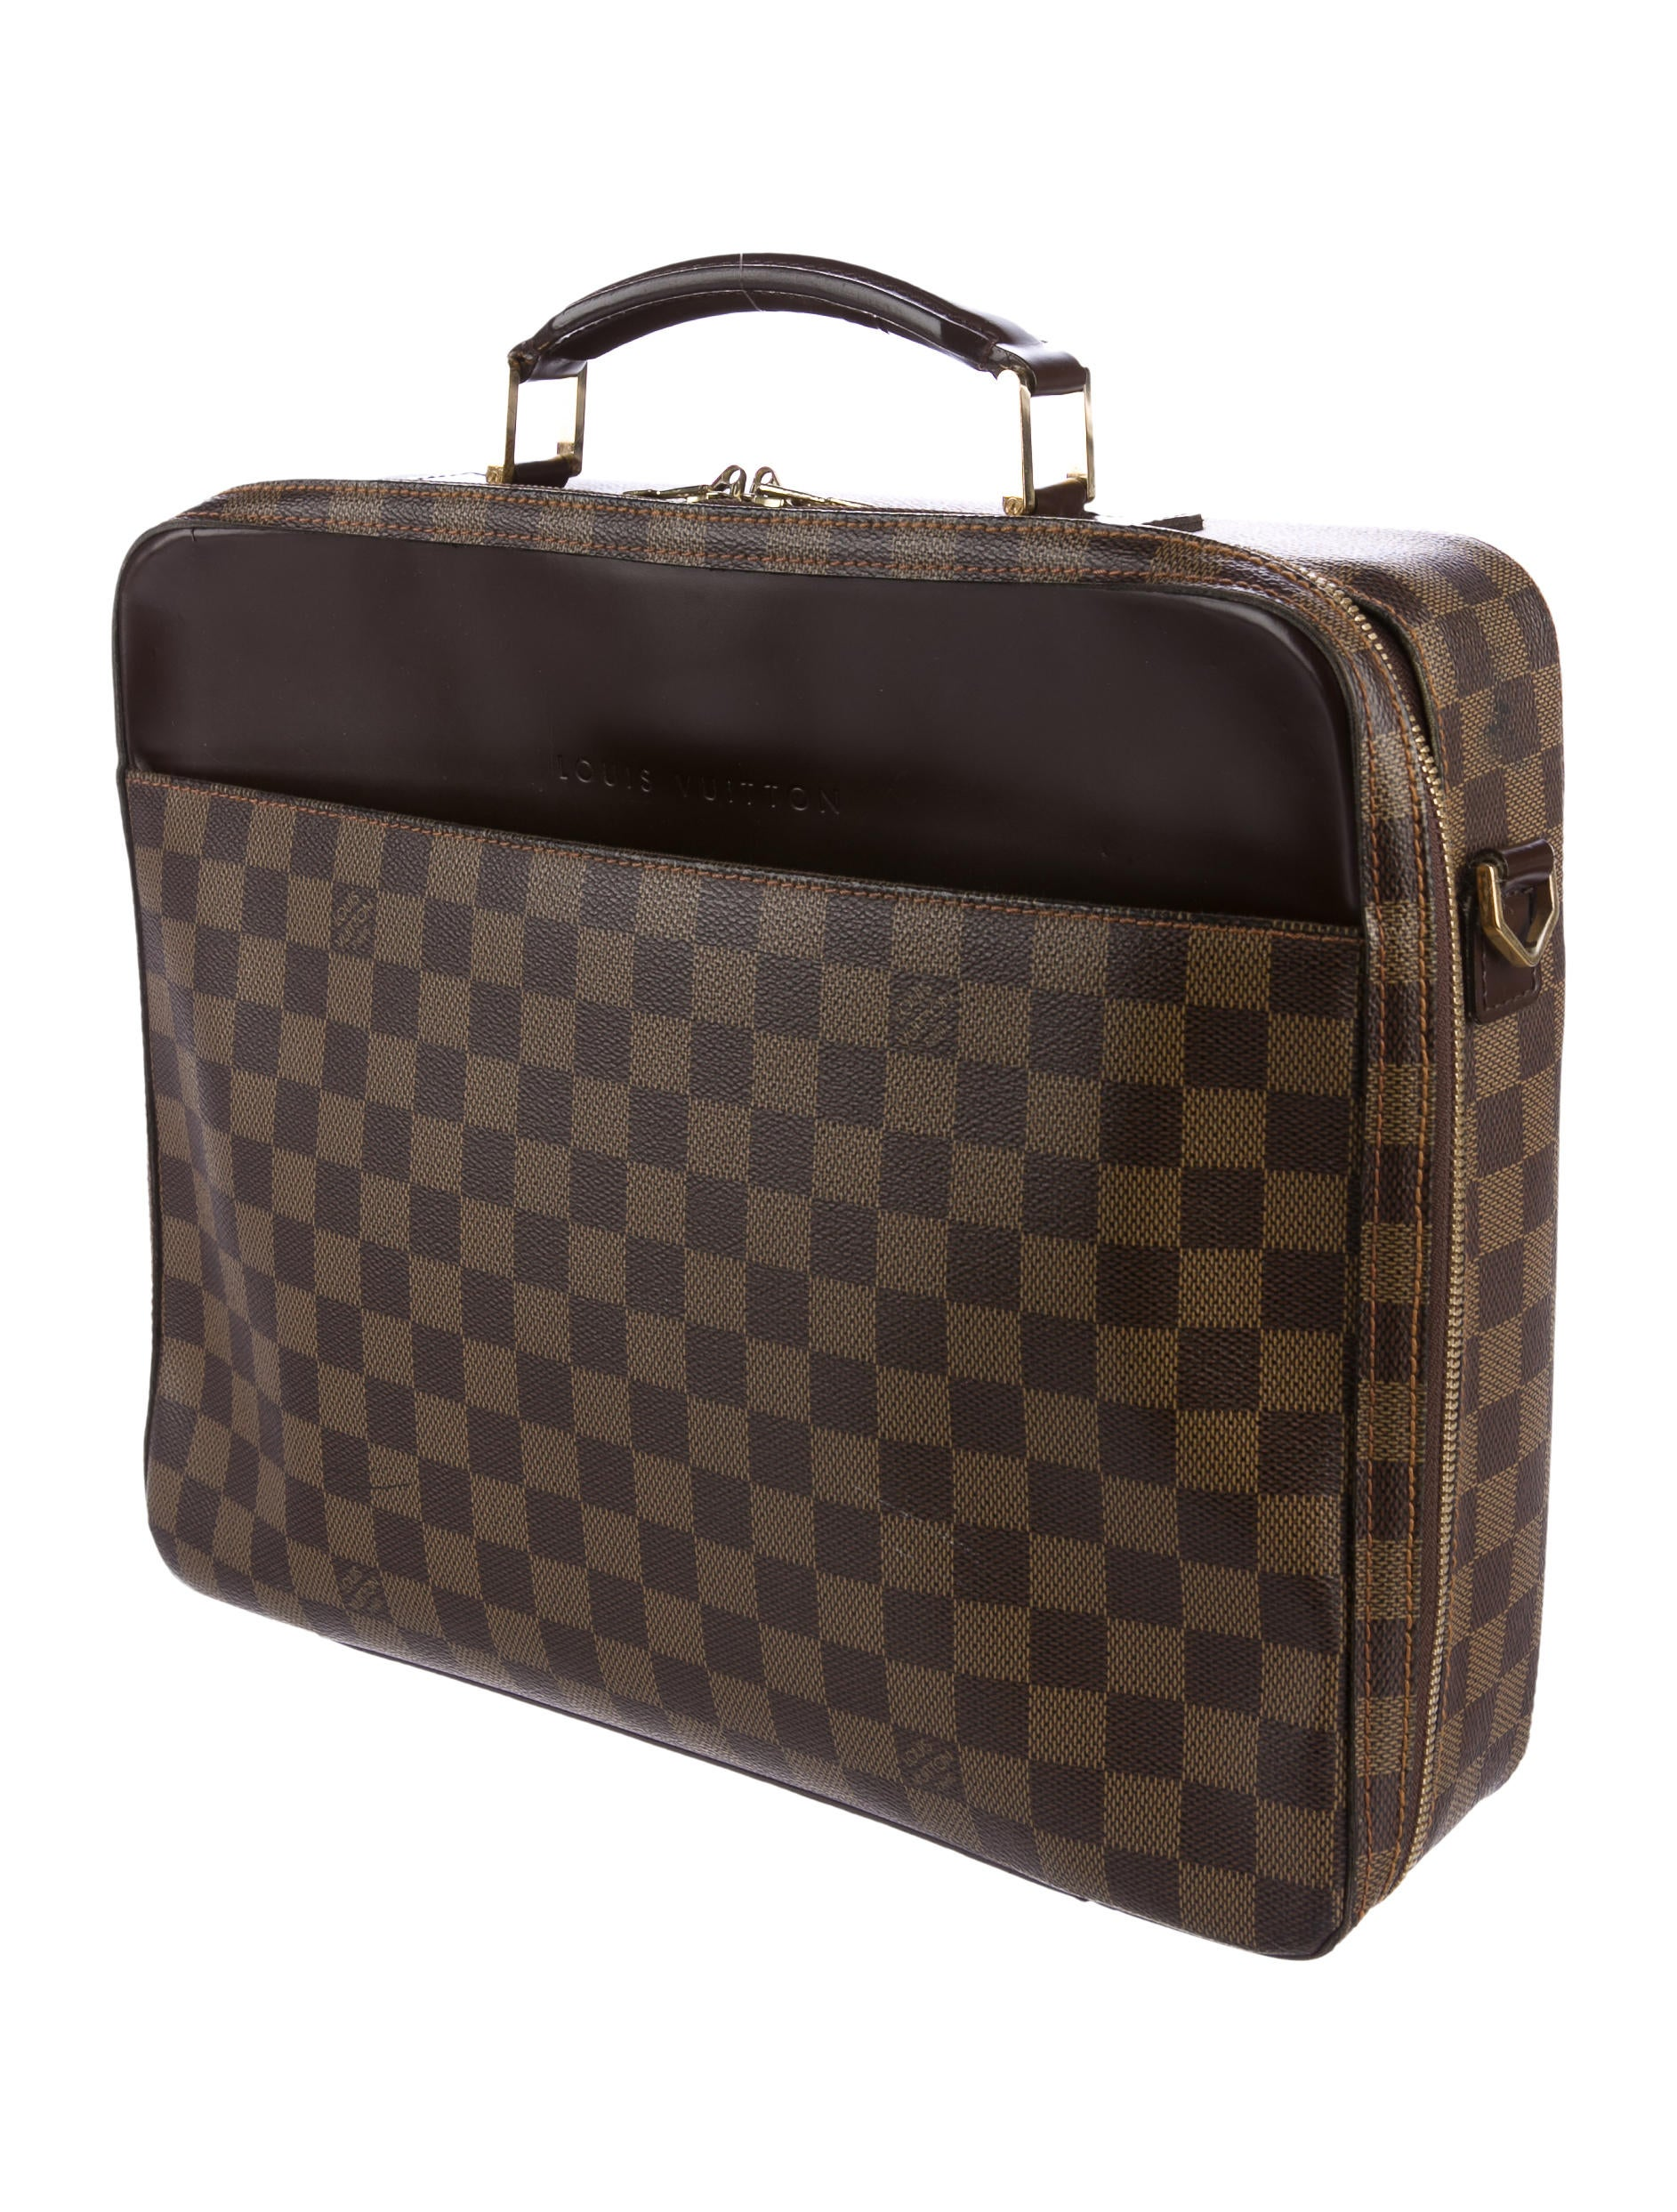 Louis vuitton damier ebene porte ordinateur sabana bags for Porte ordinateur